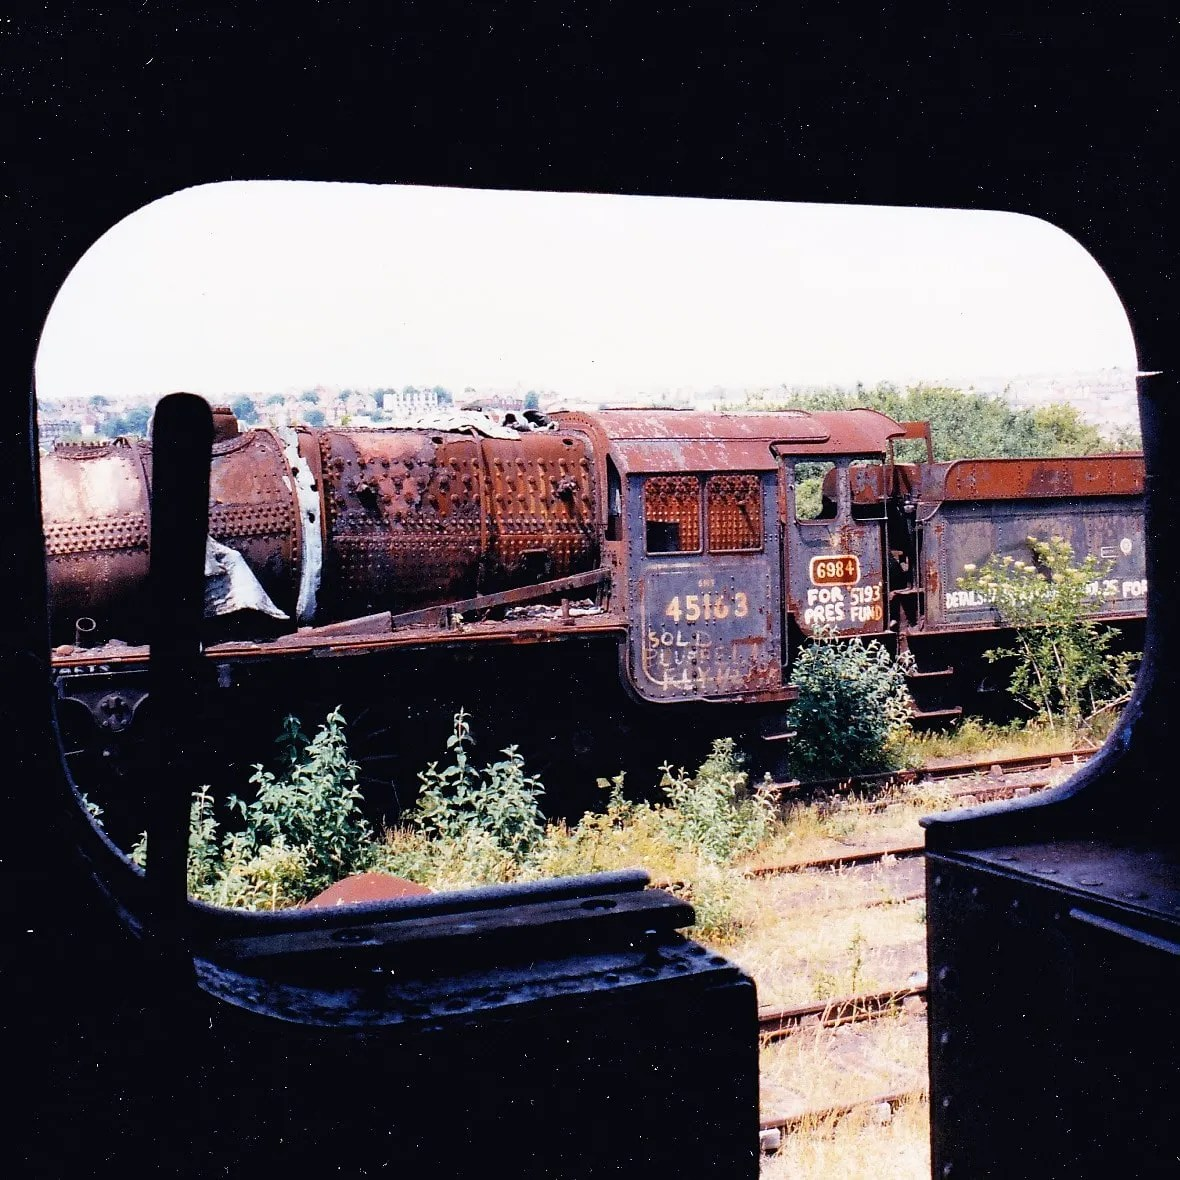 Stanier Black Five locomotive 45163 at Barry Scrapyard